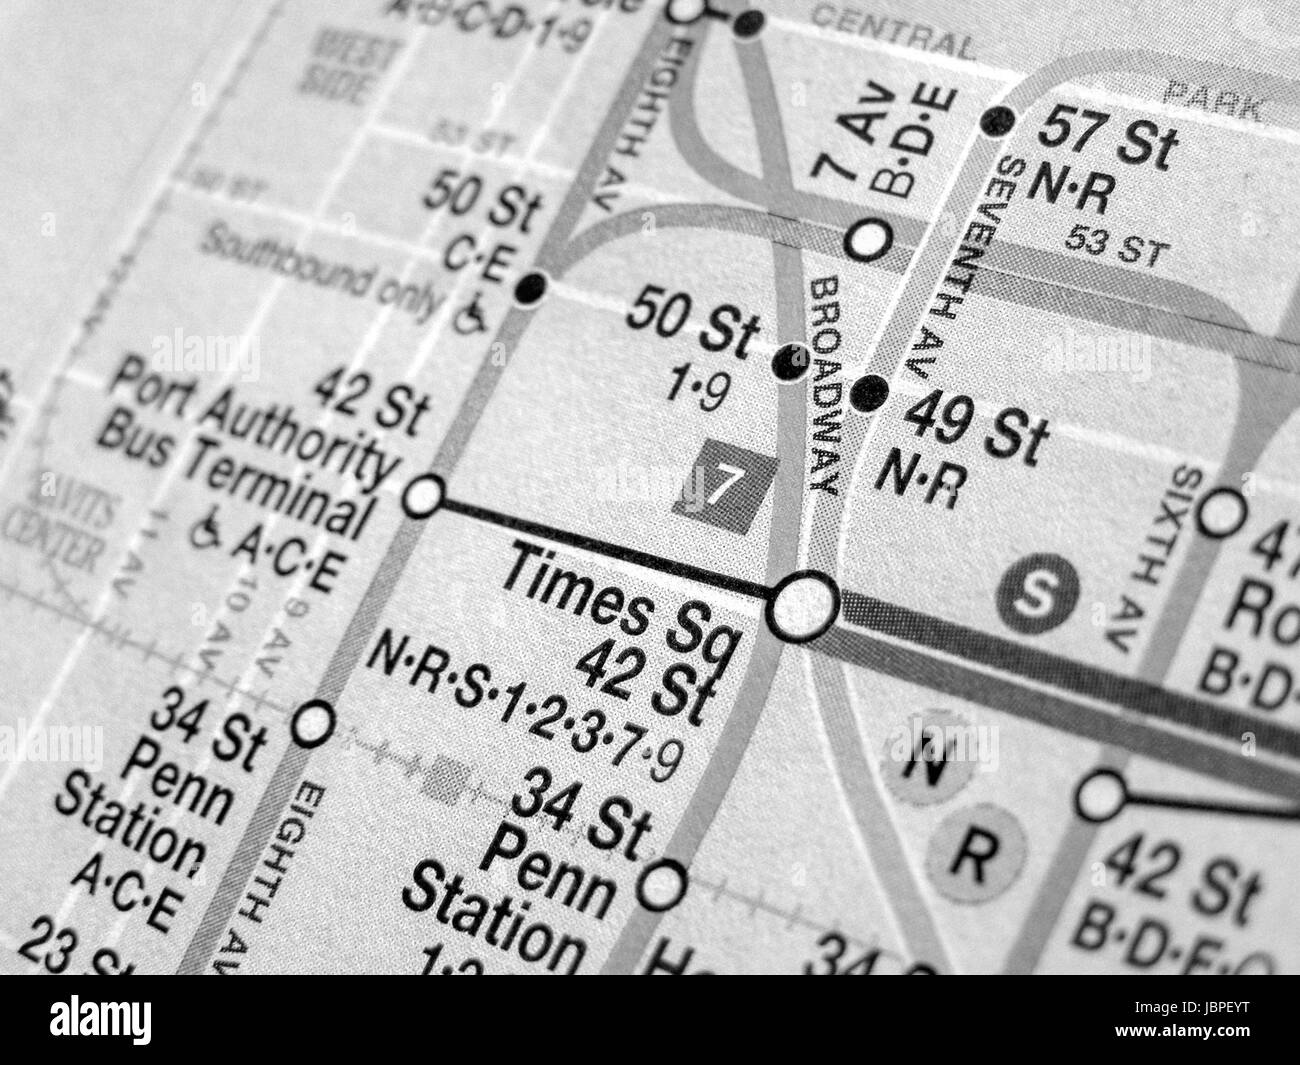 Black And White Subway Map.New York Subway Map Black And White Stock Photos Images Alamy